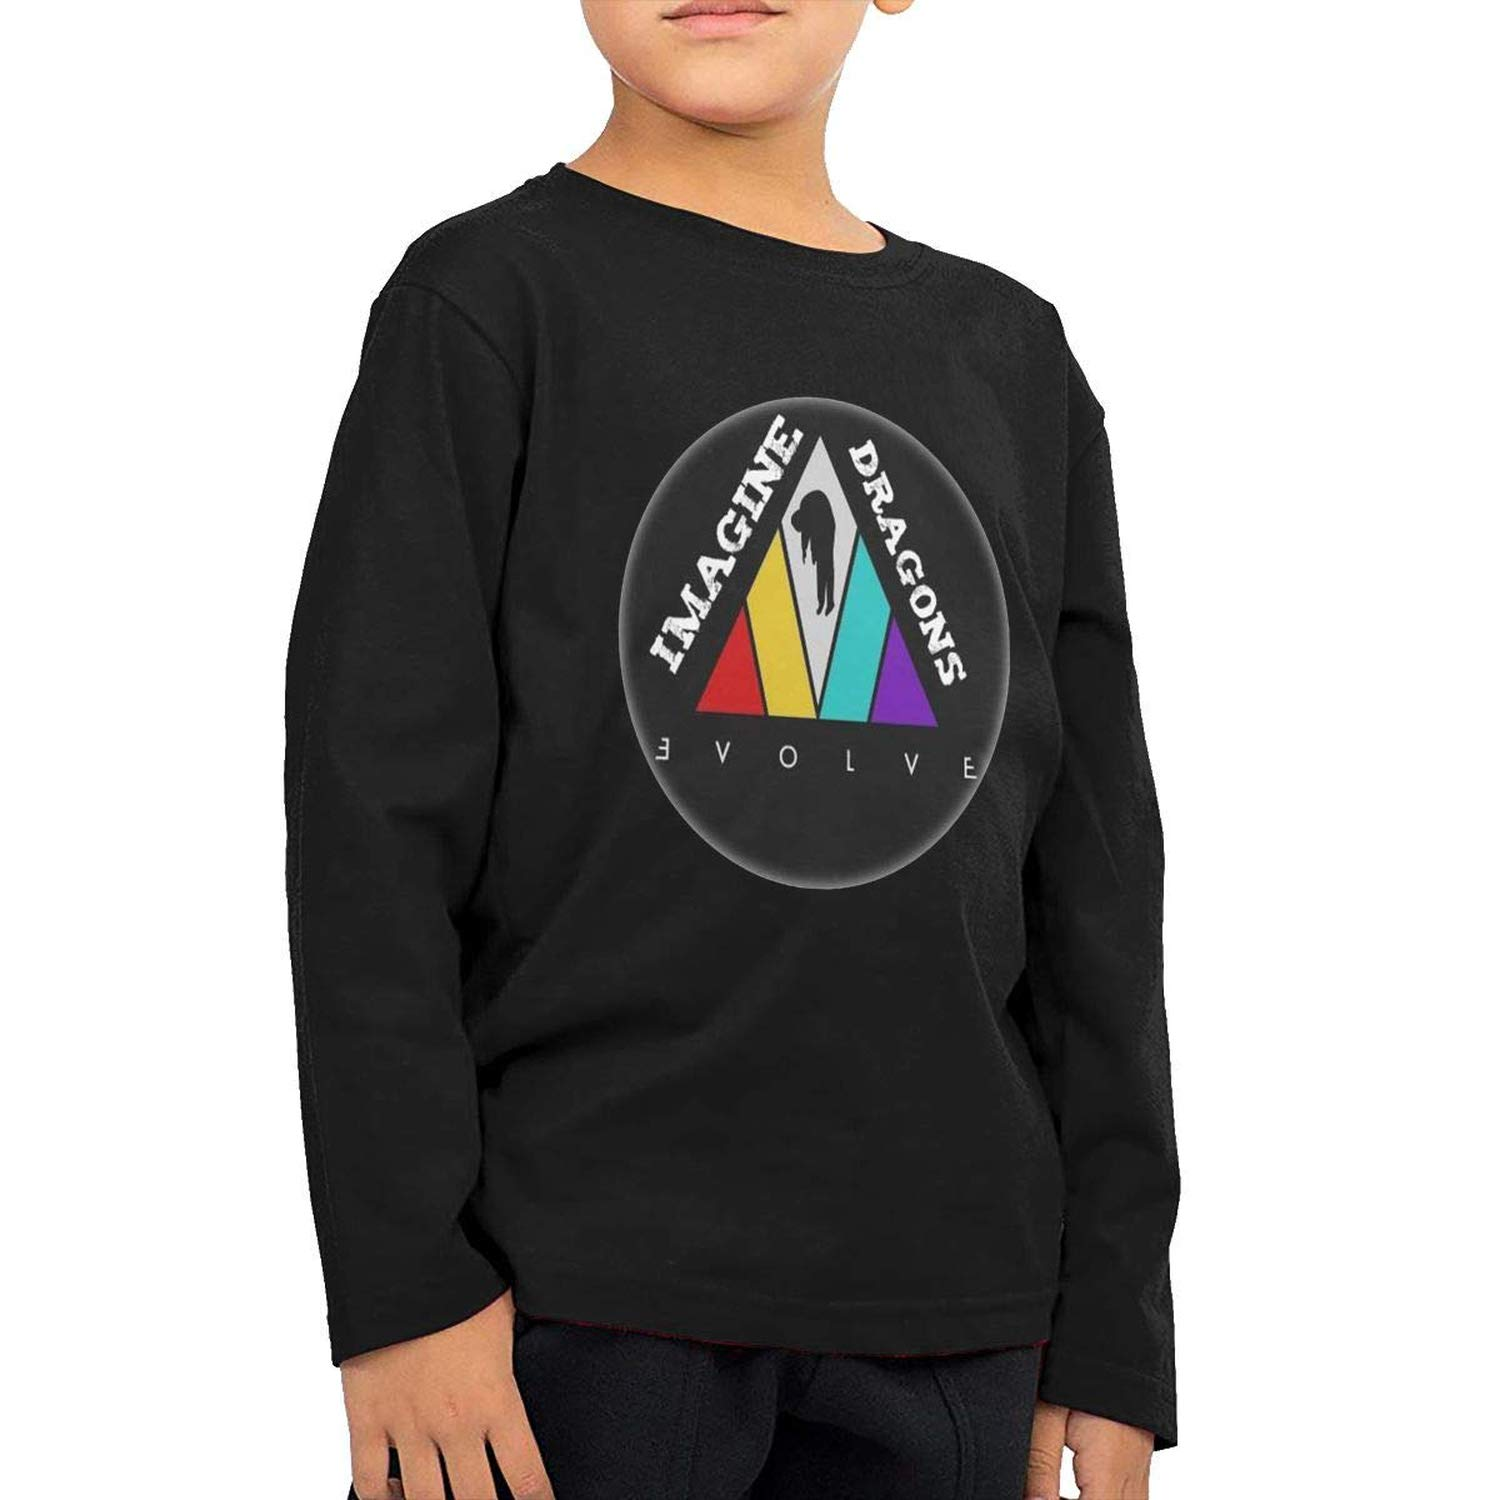 To-night Childrens Long Sleeve T-Shirt Imagine Dragons Personality Street Trend Creation Black